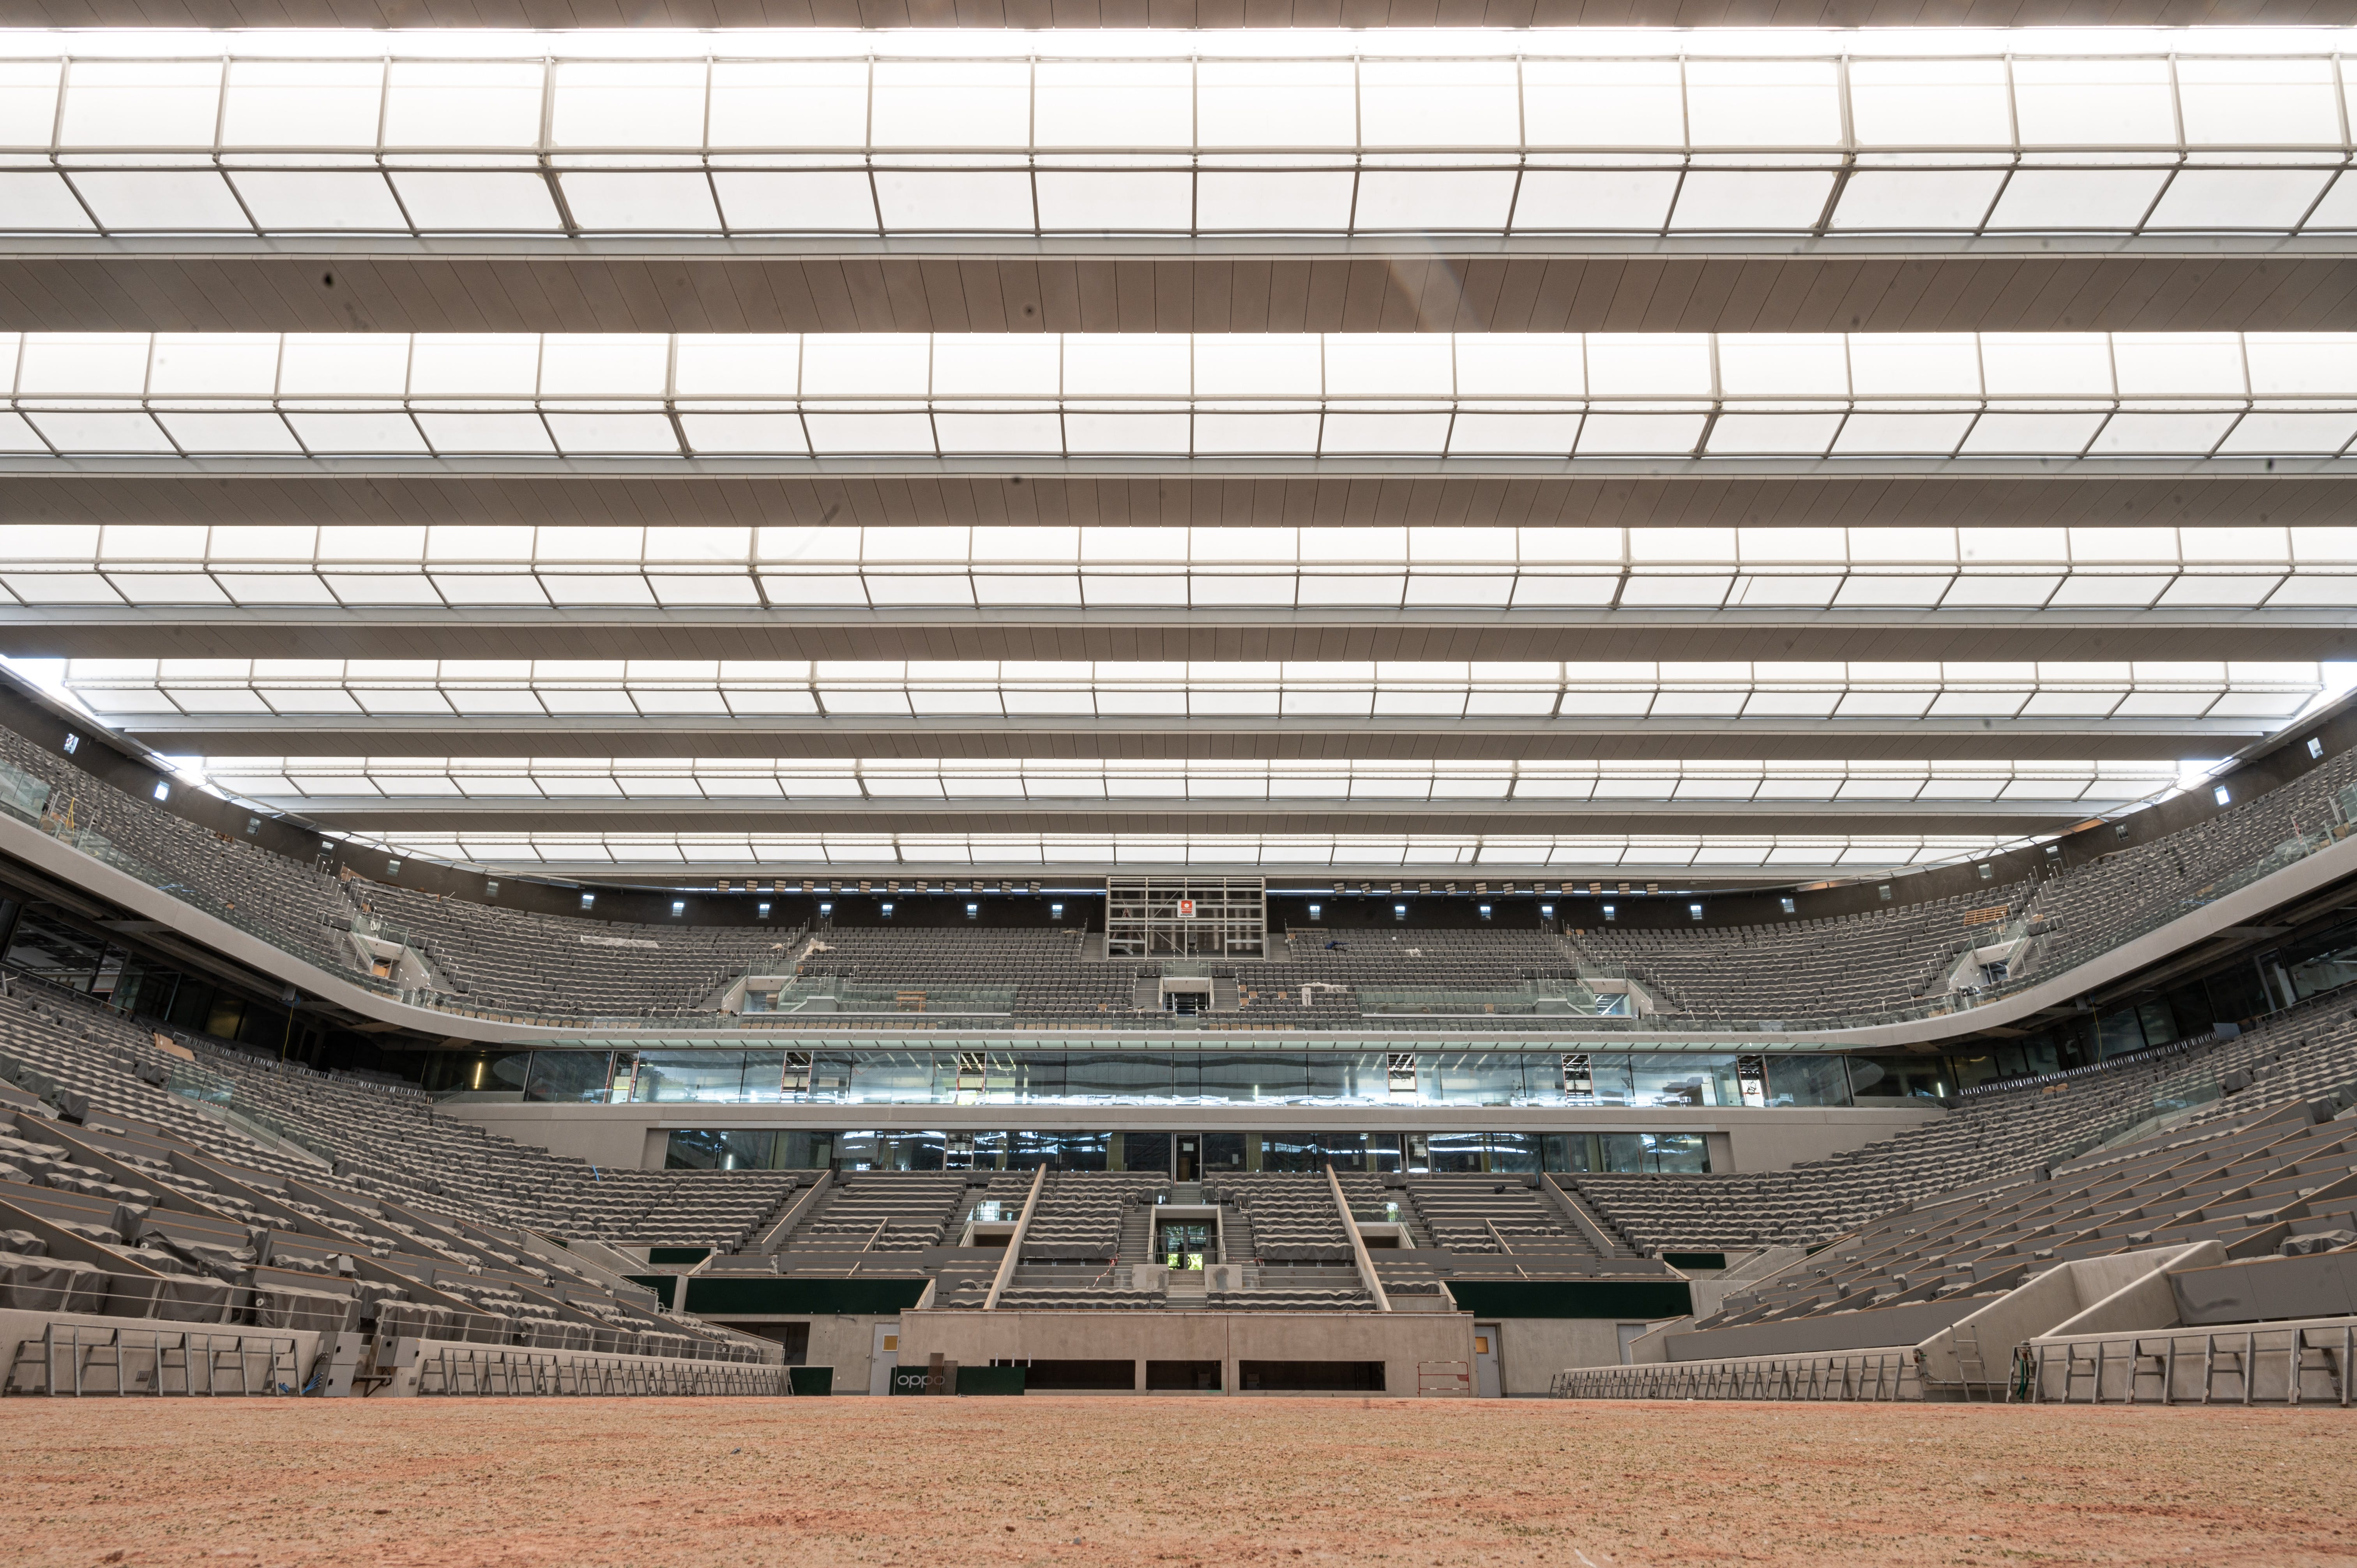 New roof of Philippe-Chatrier court at Roland-Garros